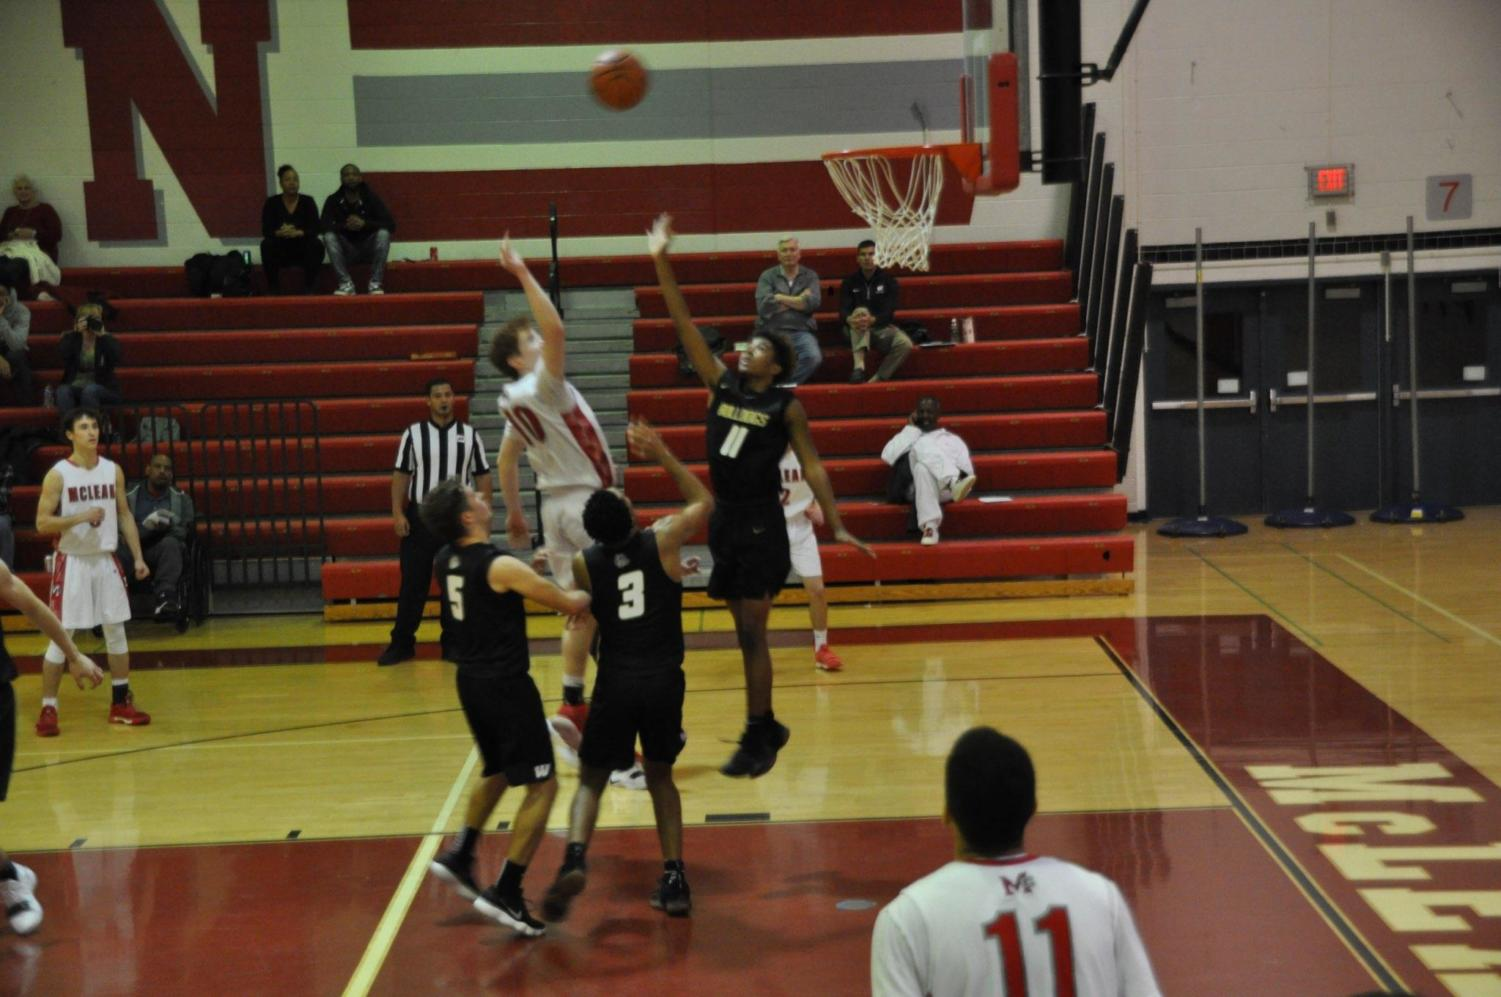 Matias Prock hits go ahead floater against Westfield Friday Dec. 7.